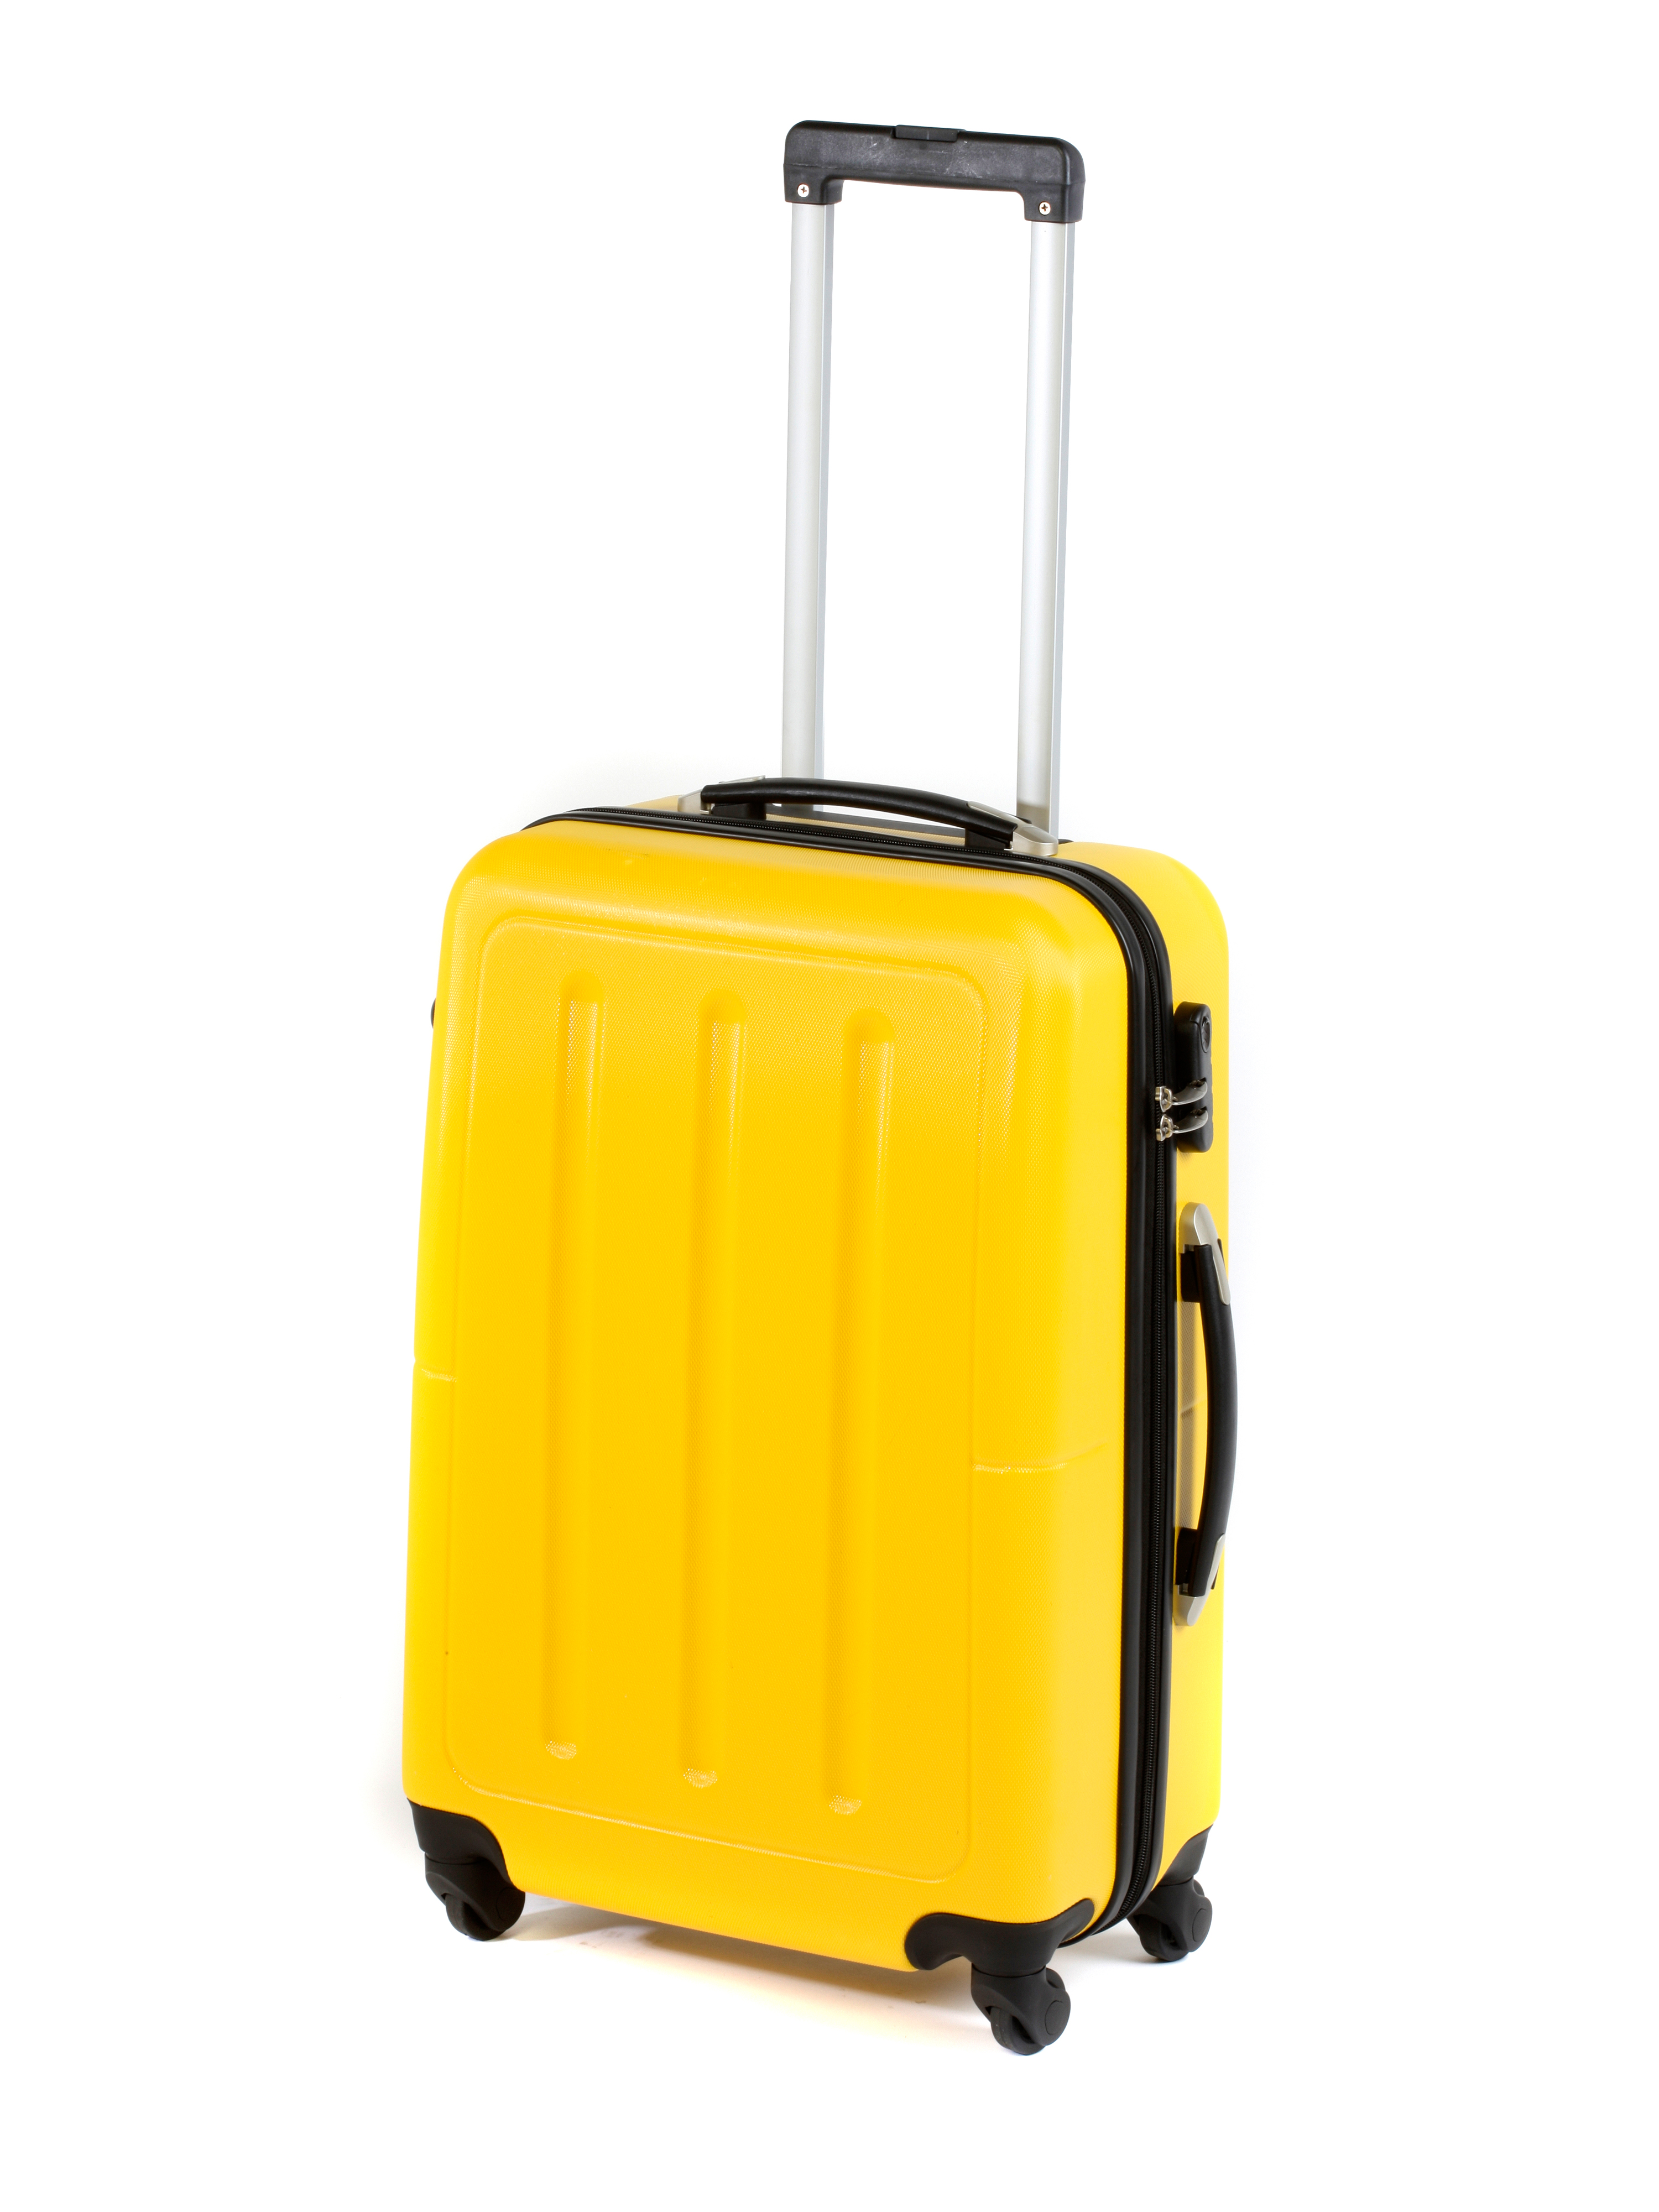 Constellation Galloway Abs Suitcase 24 Quot Yellow Luggage